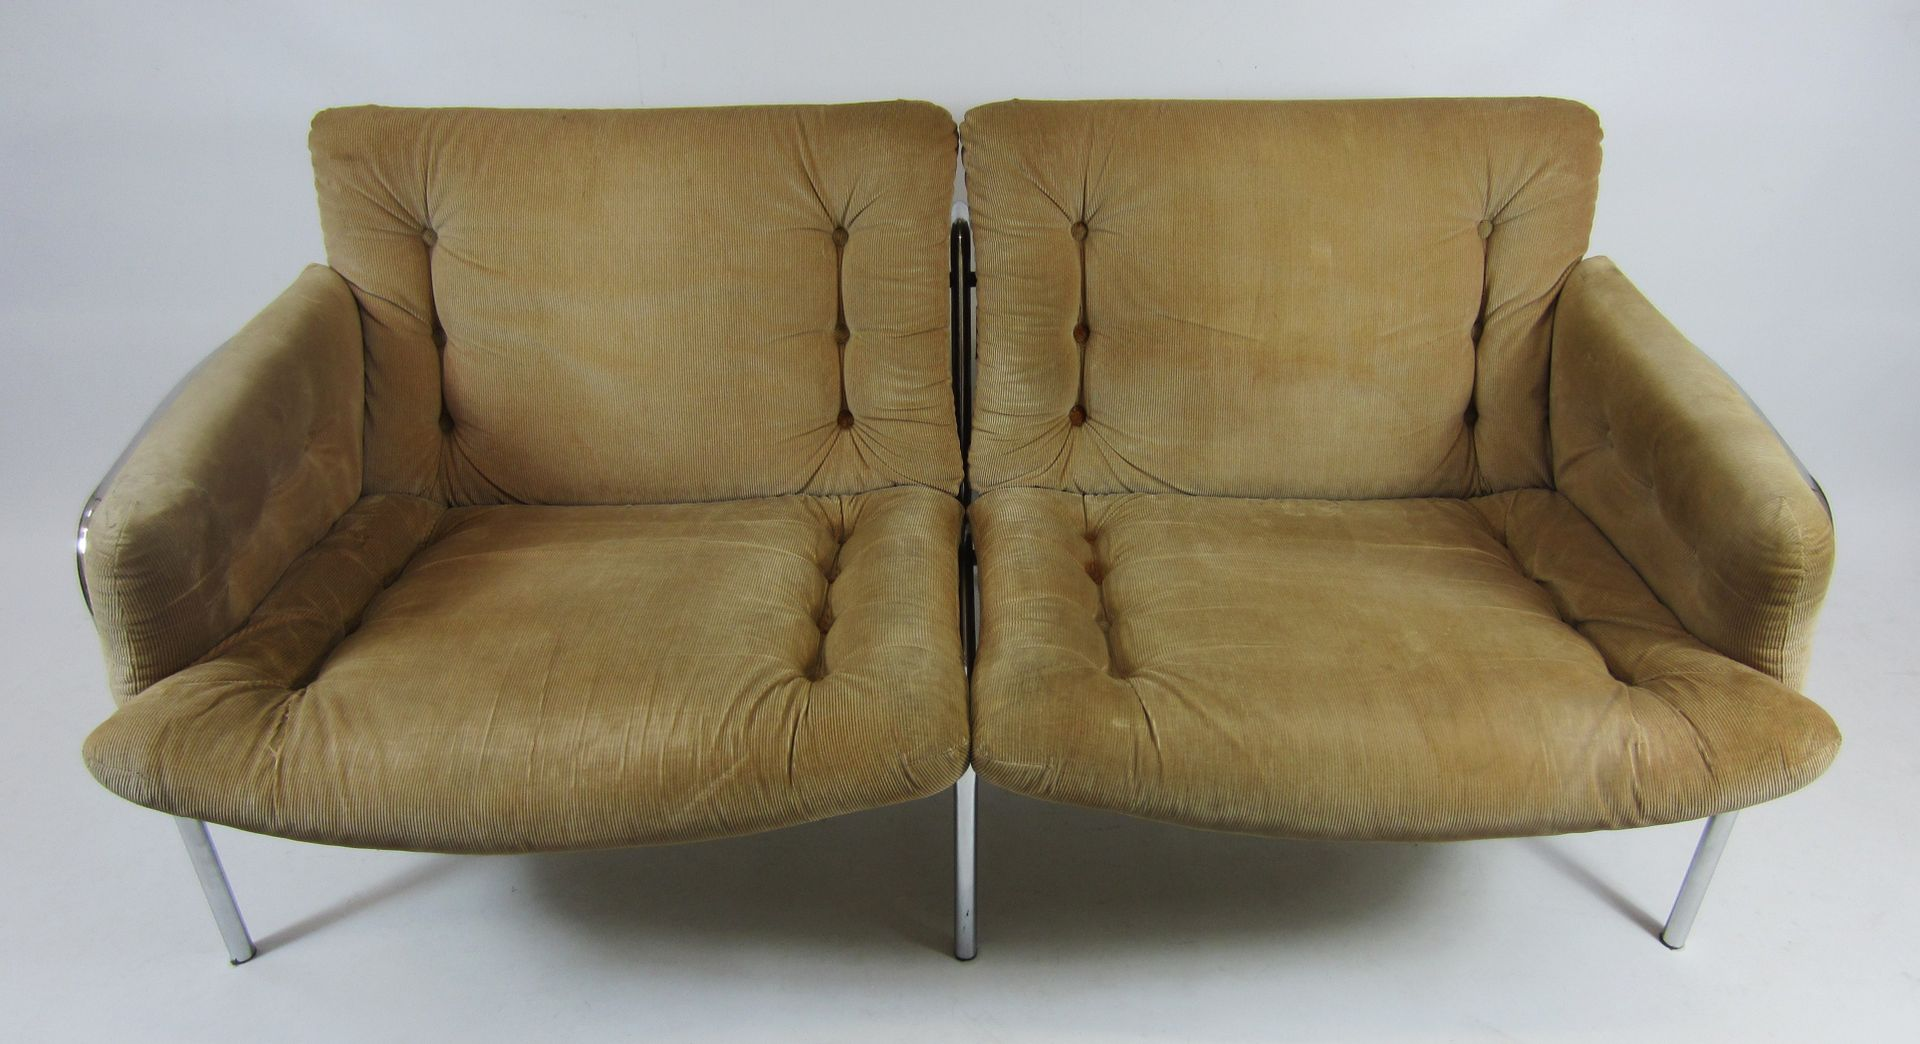 Osaka Sofa By Martin Visser 1960s For Sale At Pamono